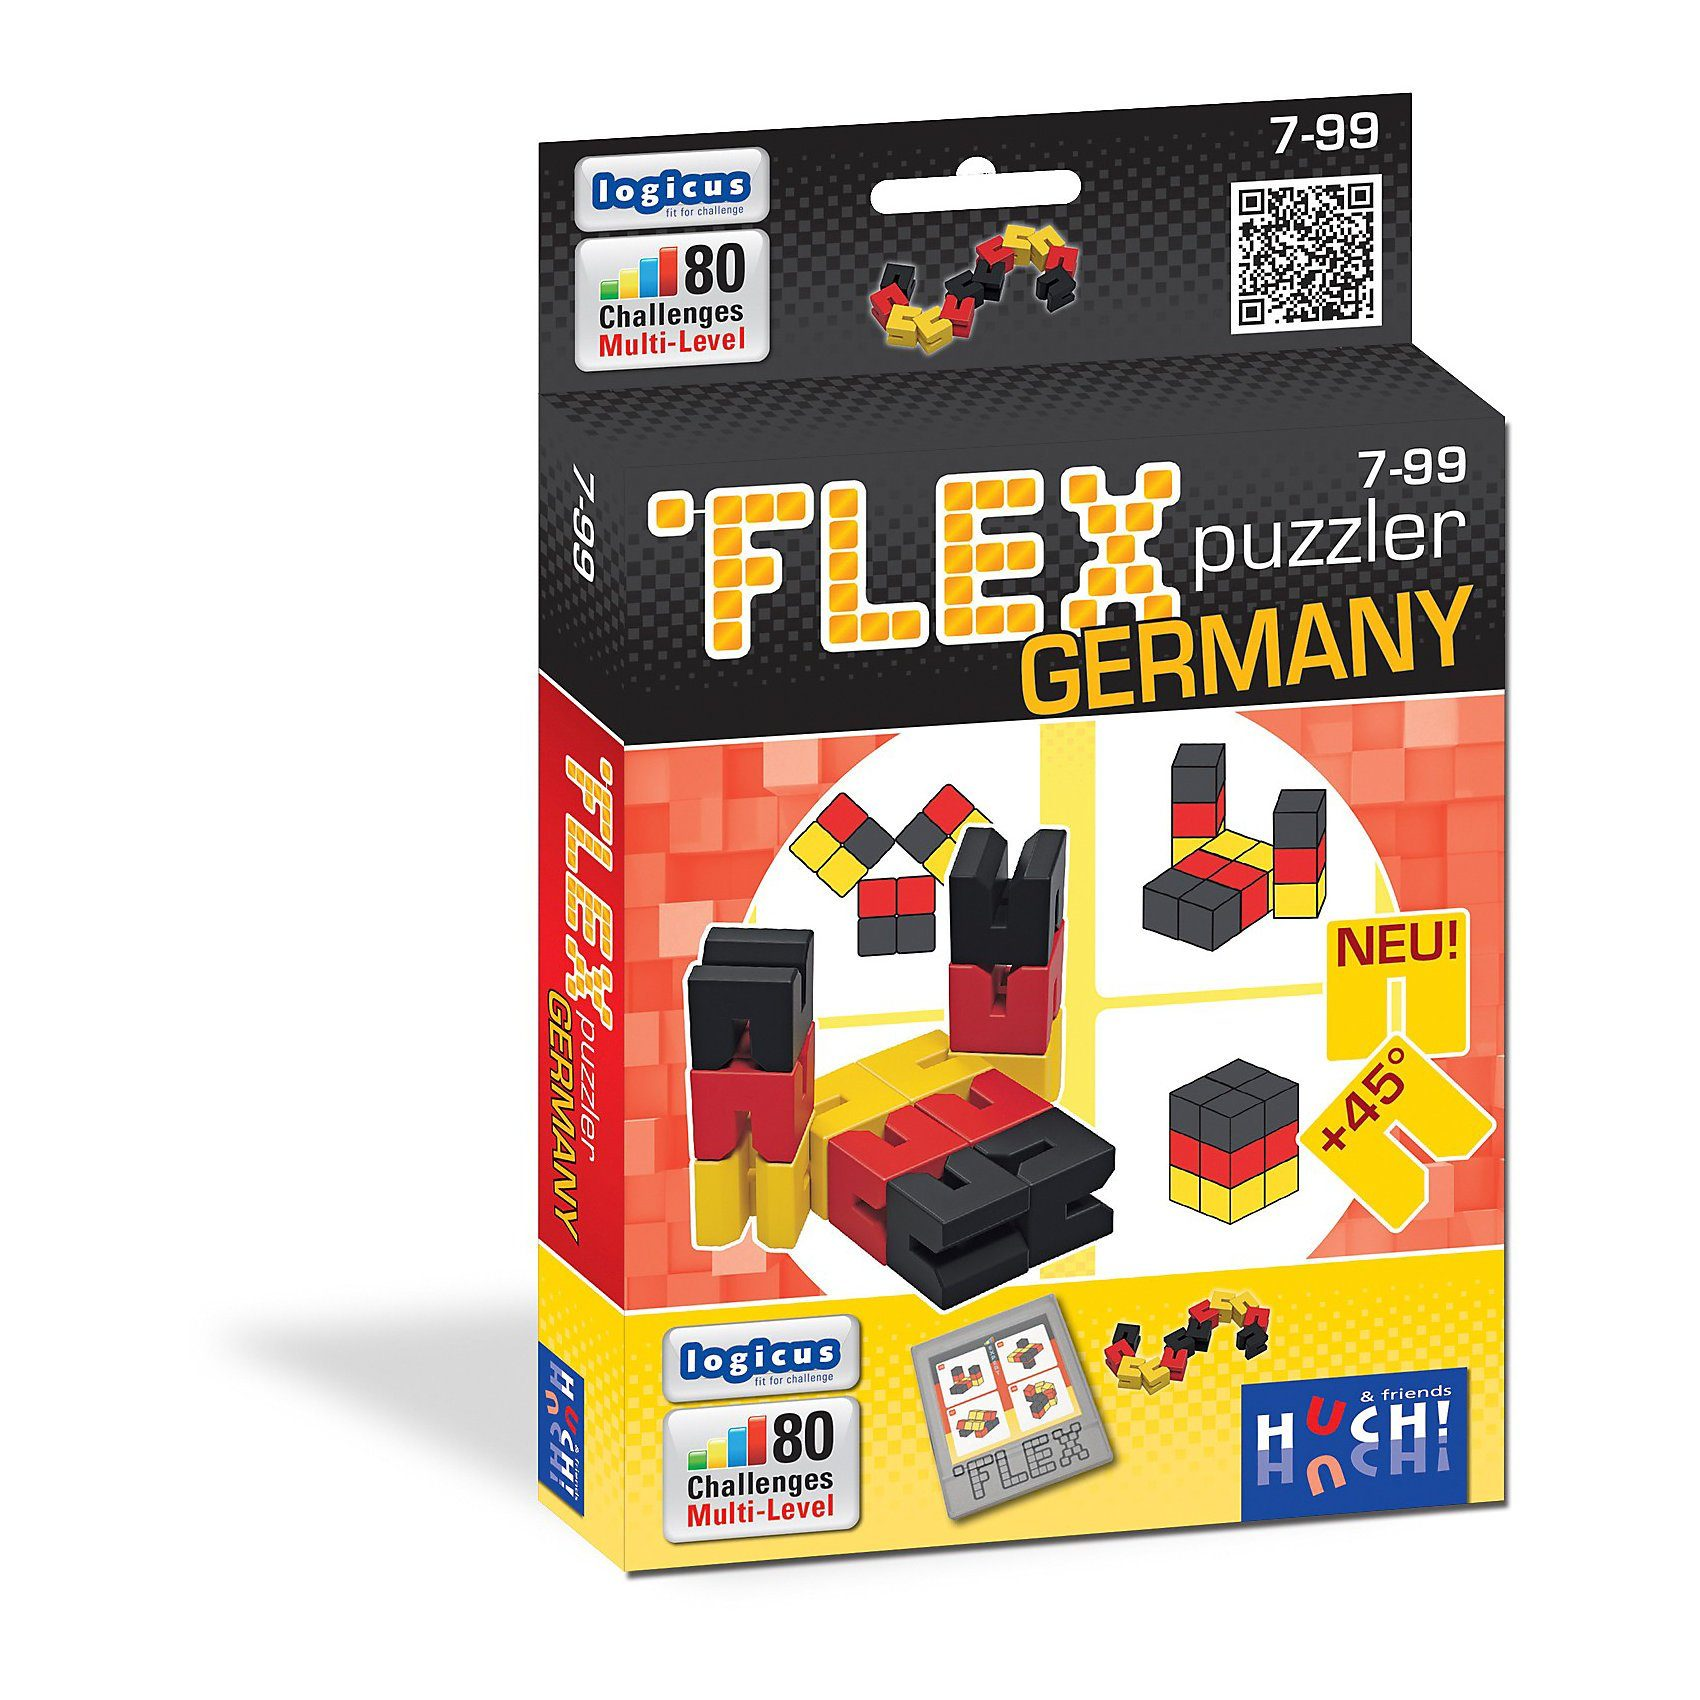 HUCH! Flex Puzzler Germany